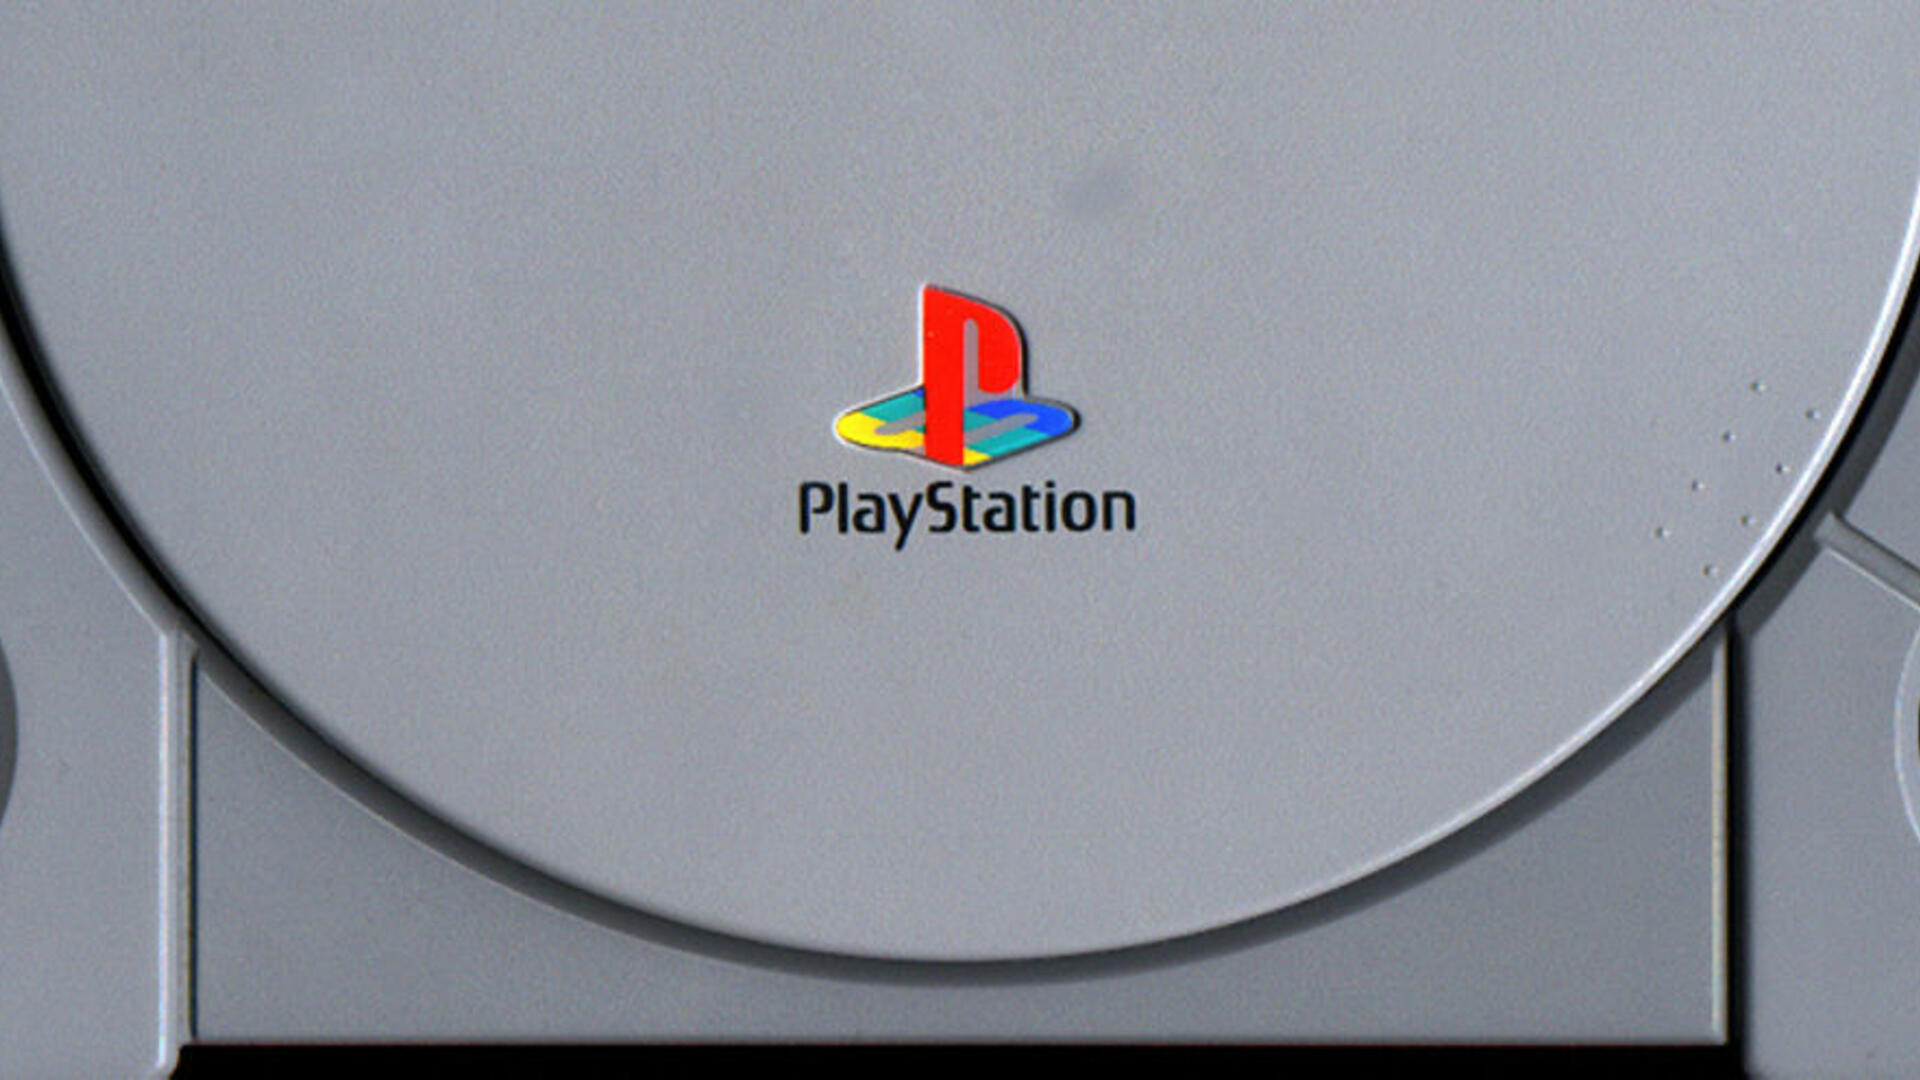 Why the Contribution Retro Consoles Like PlayStation Classic